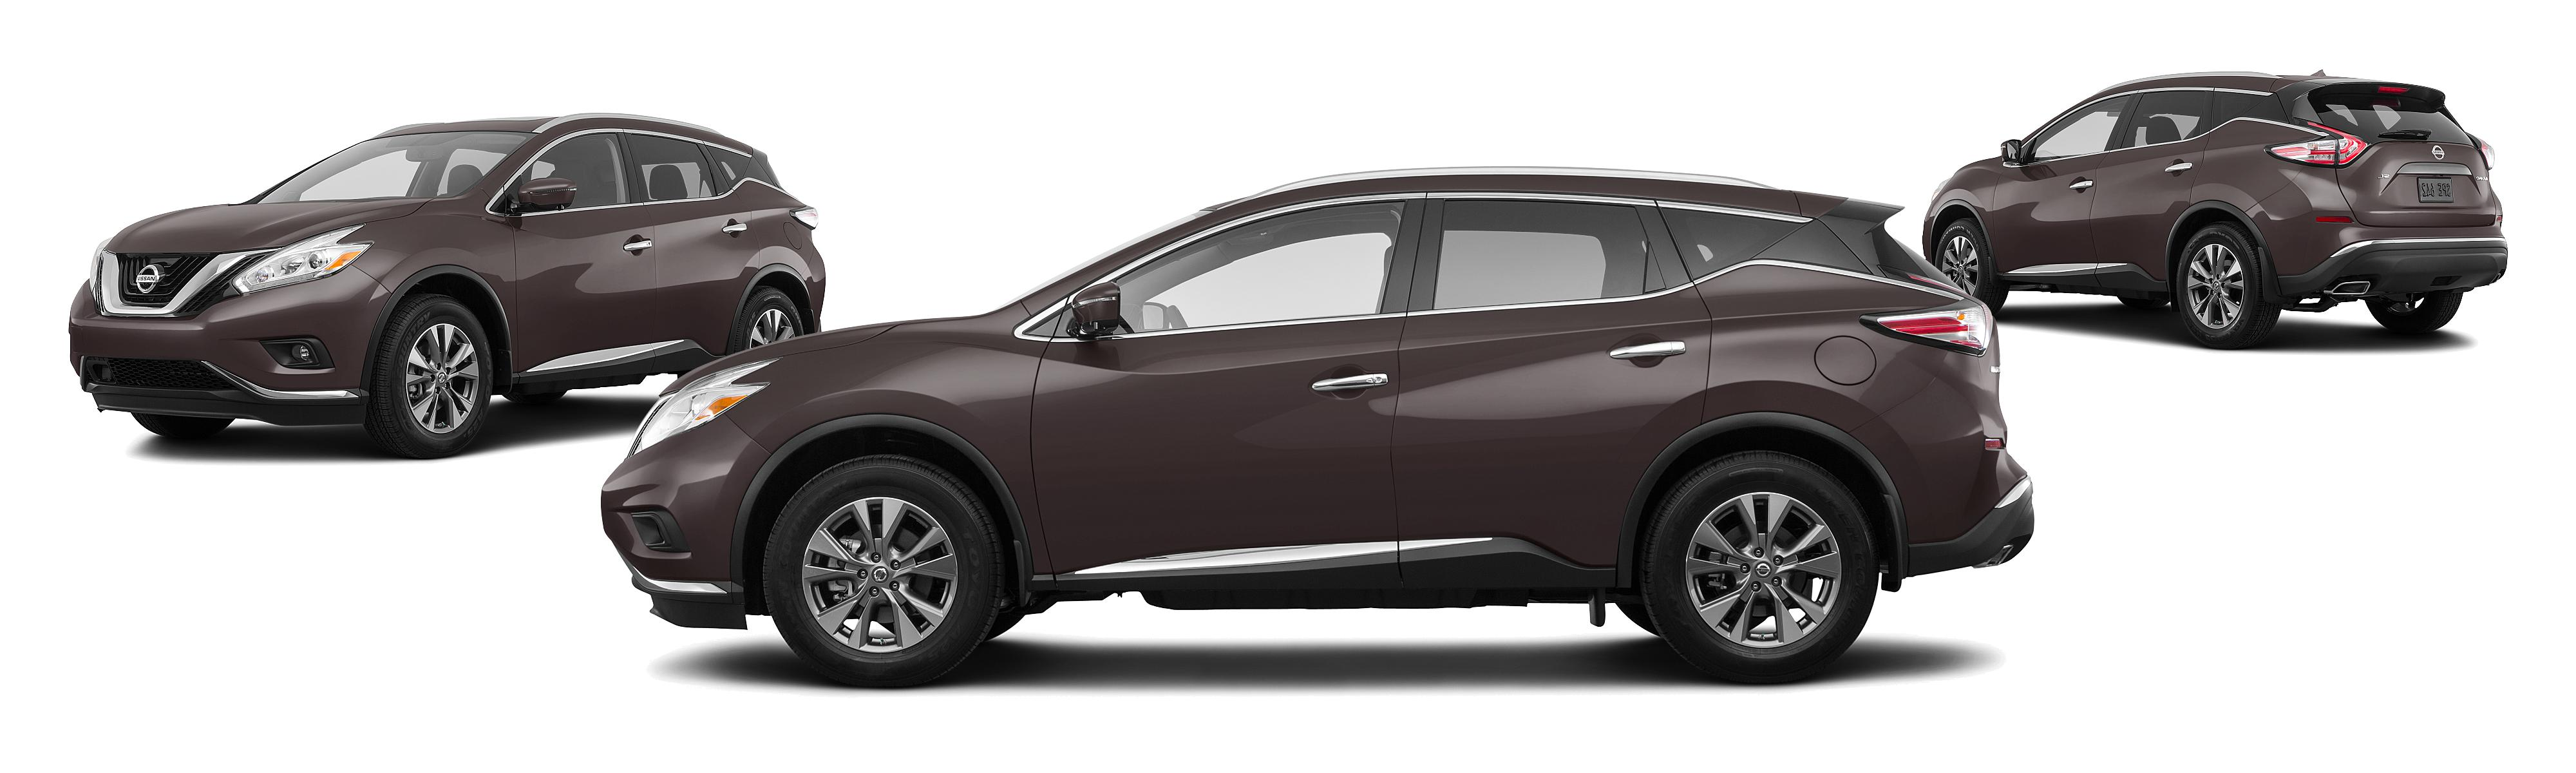 midsize crossover roadshow suv nissan murano auto platinum price s review high is on